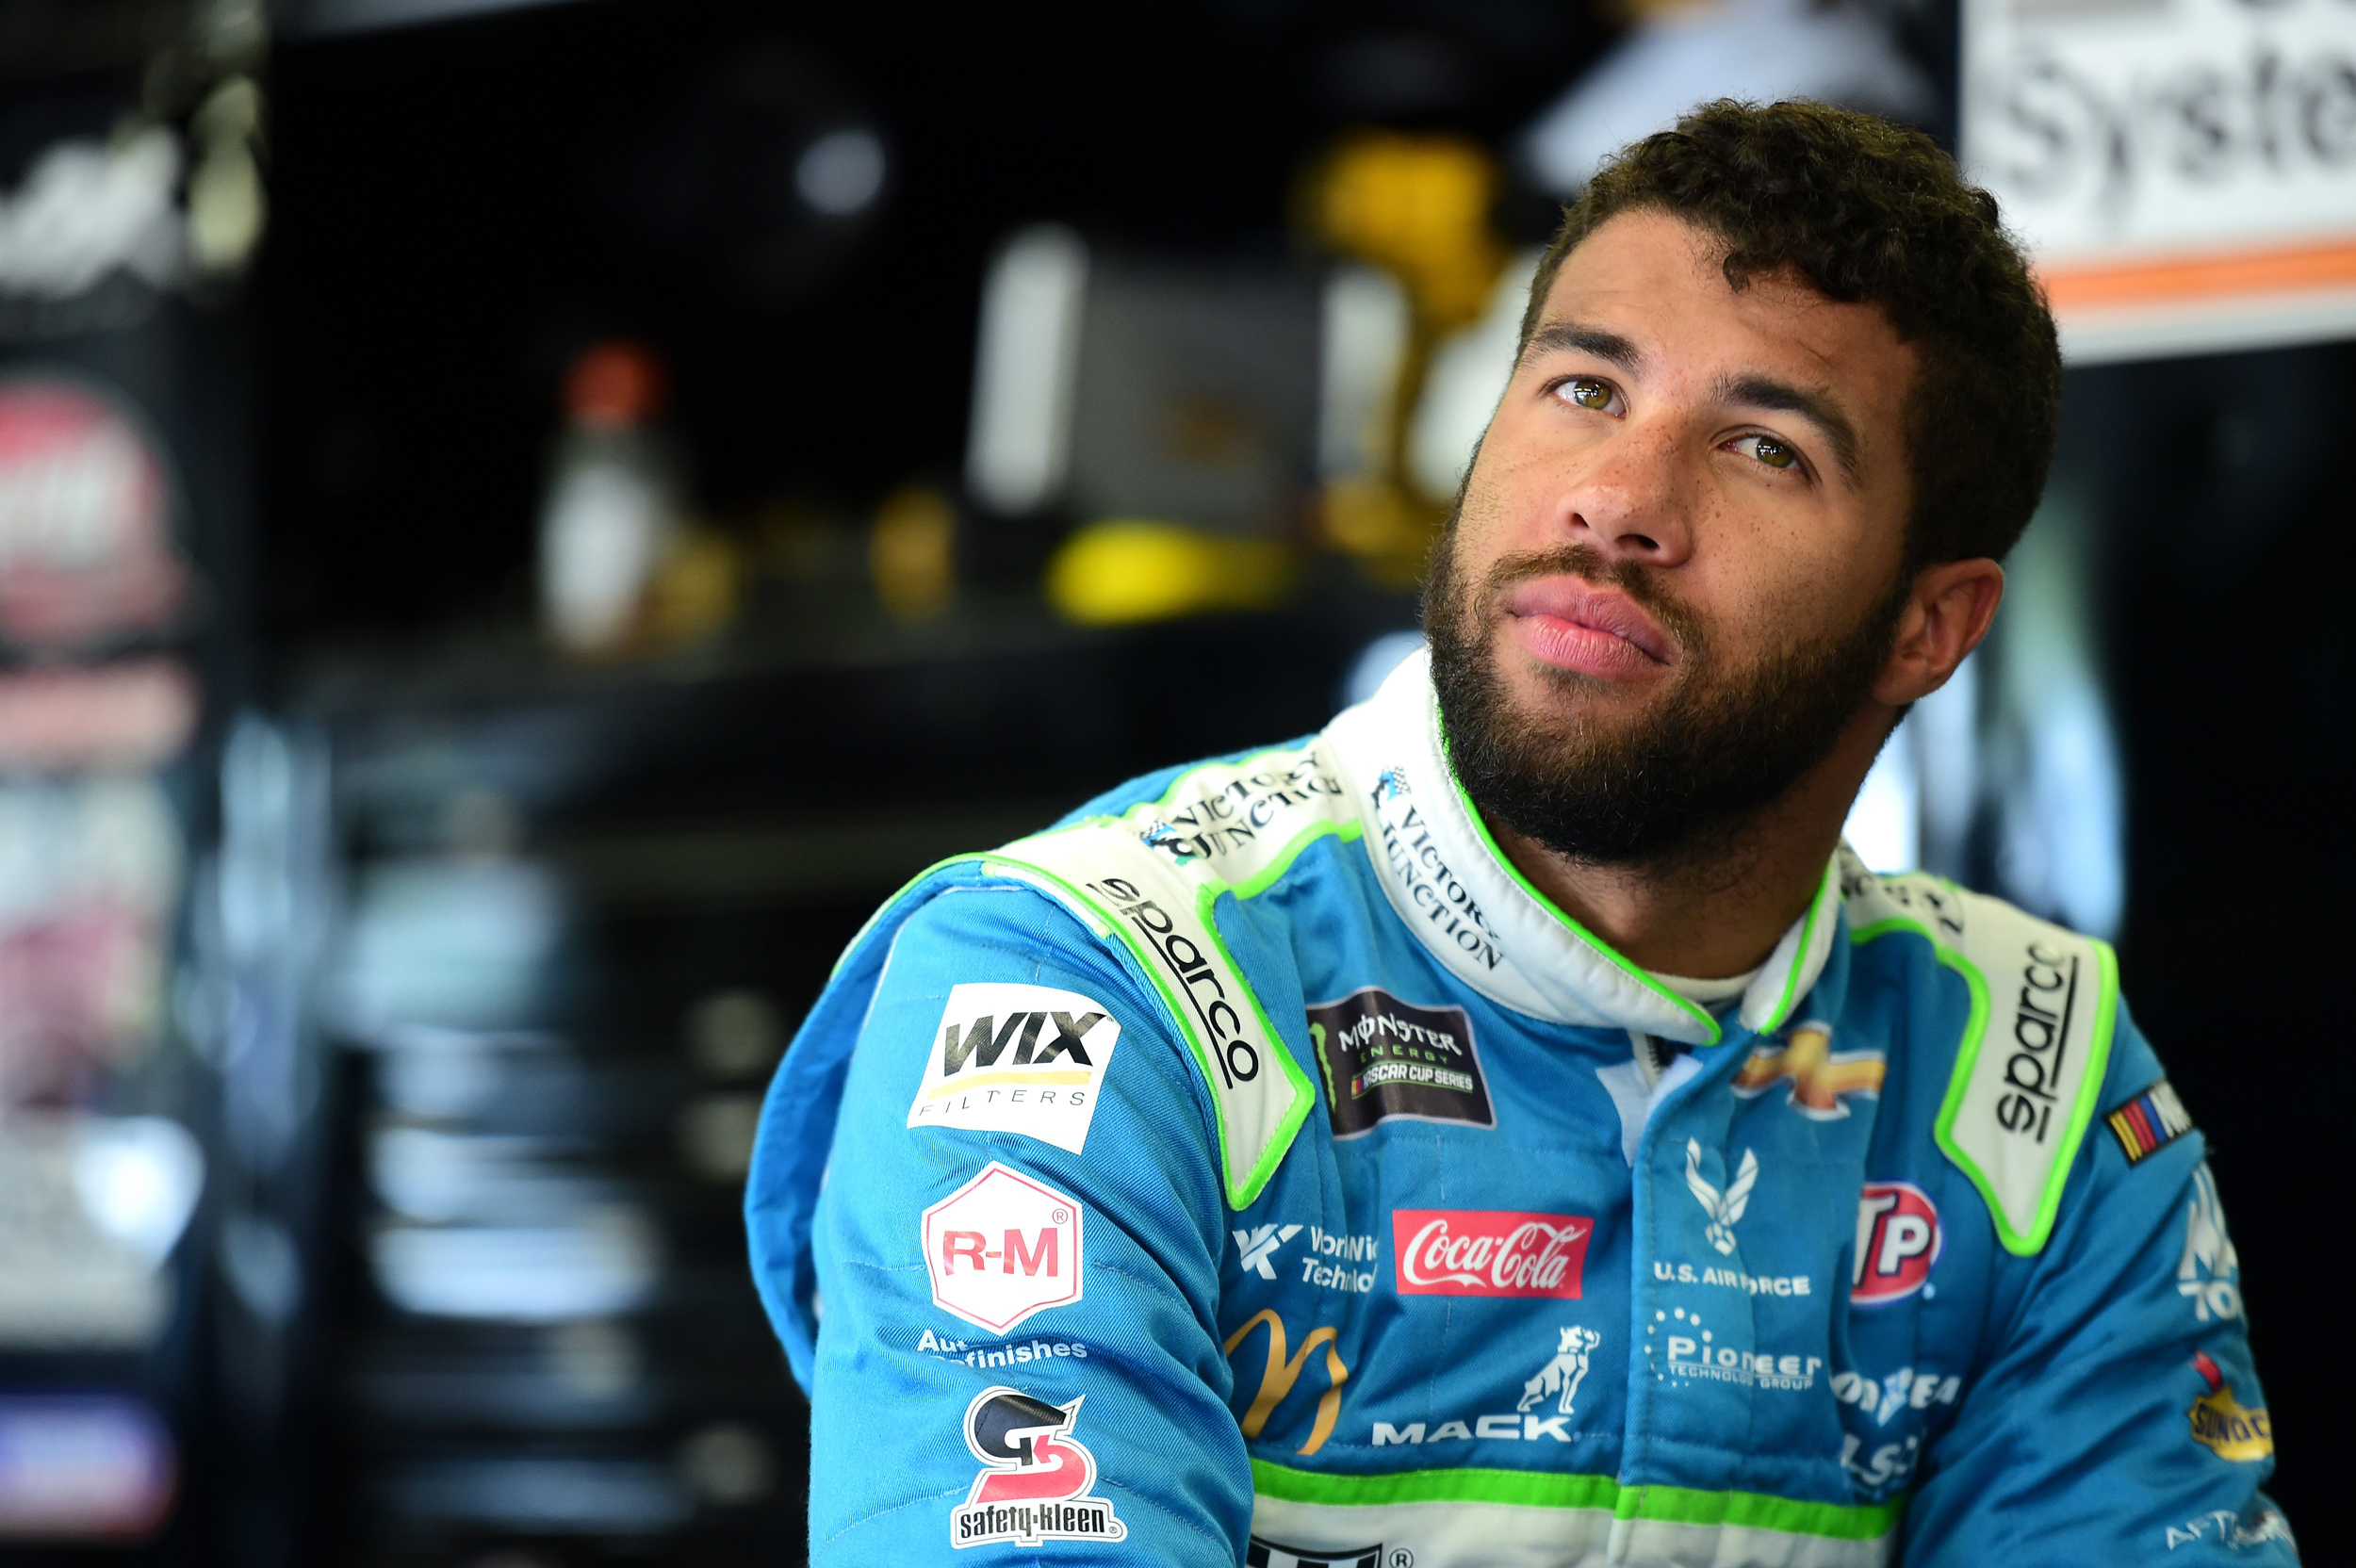 Bubba Wallace becomes first Black driver to win top NASCAR race since 1963